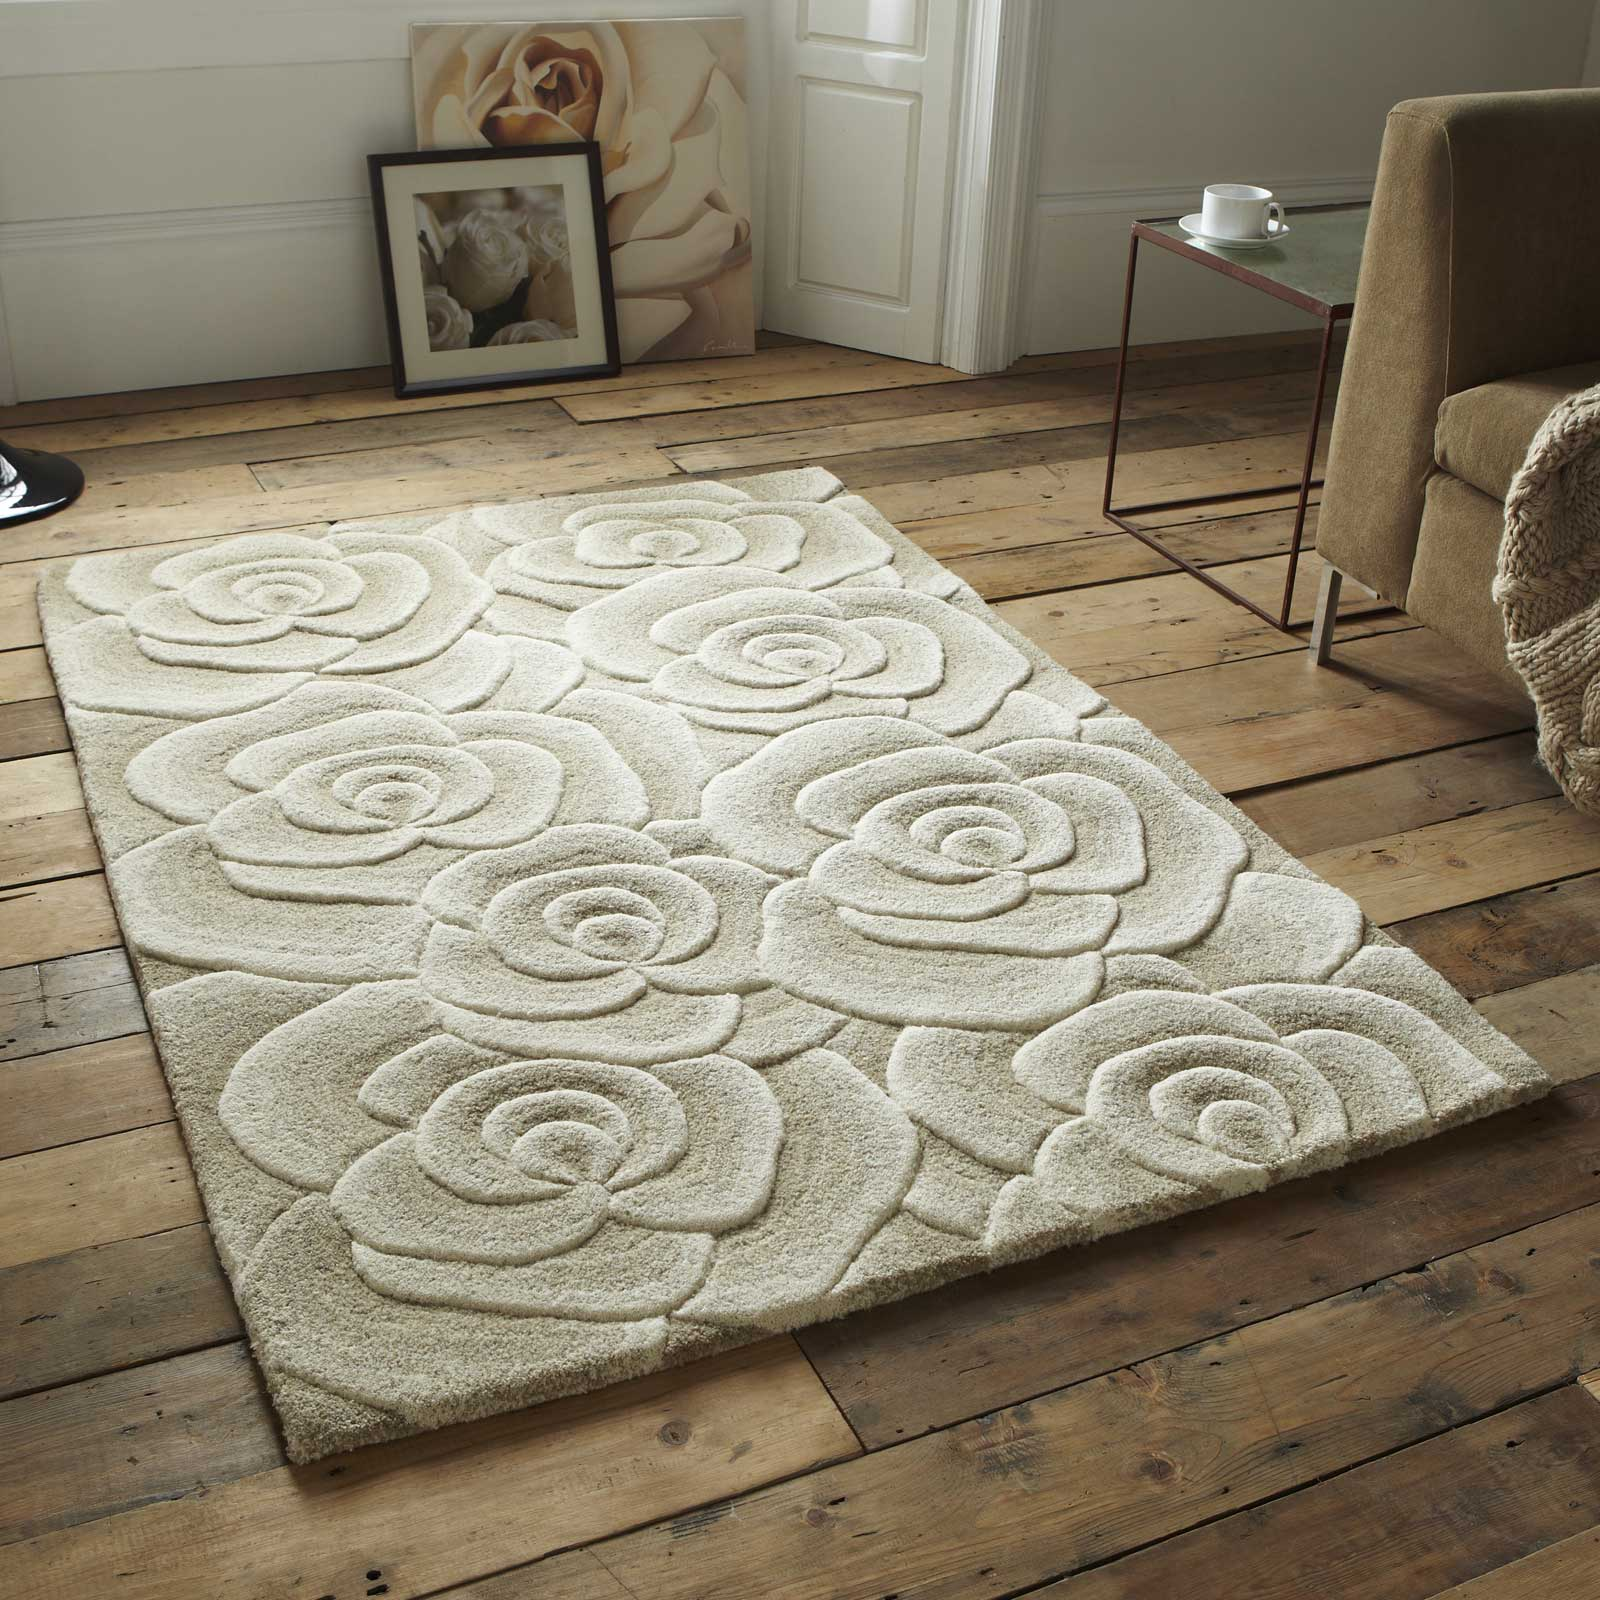 Mother's Day gift, Valentine Rugs VL10 Hand Made Indian Wool in Beige